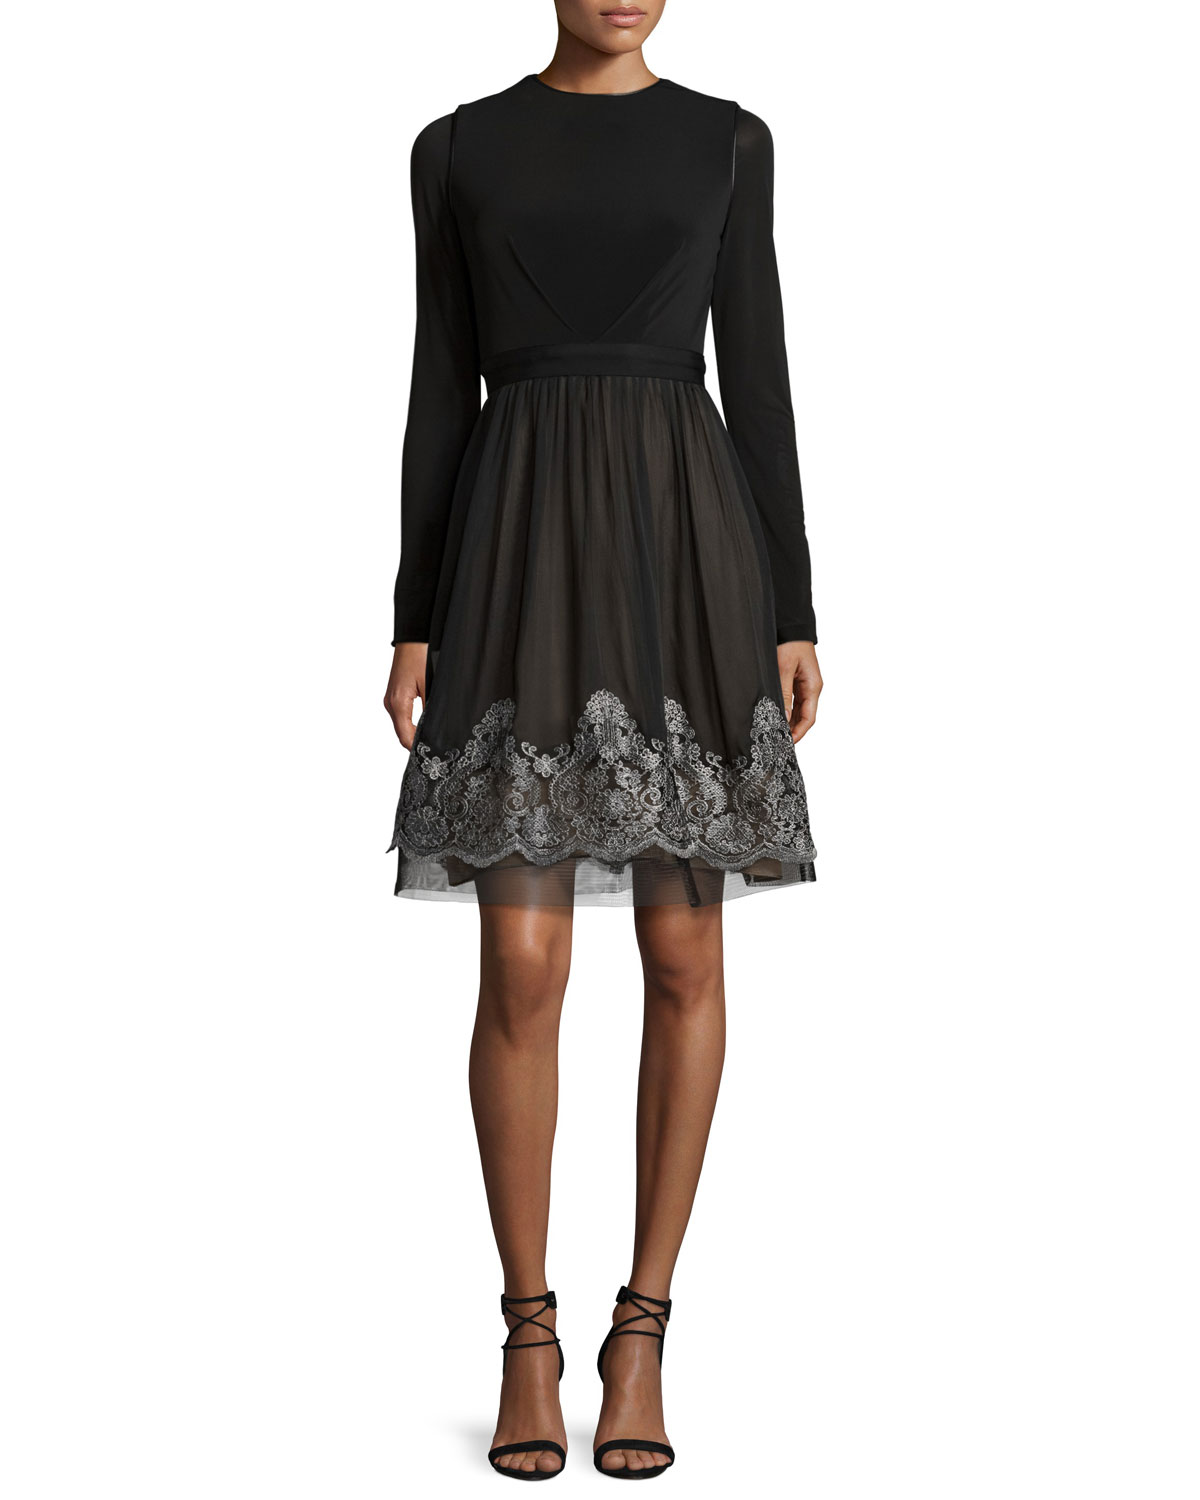 Long-Sleeve Jersey & Silk Fit-and-Flare Dress, Black/Silver